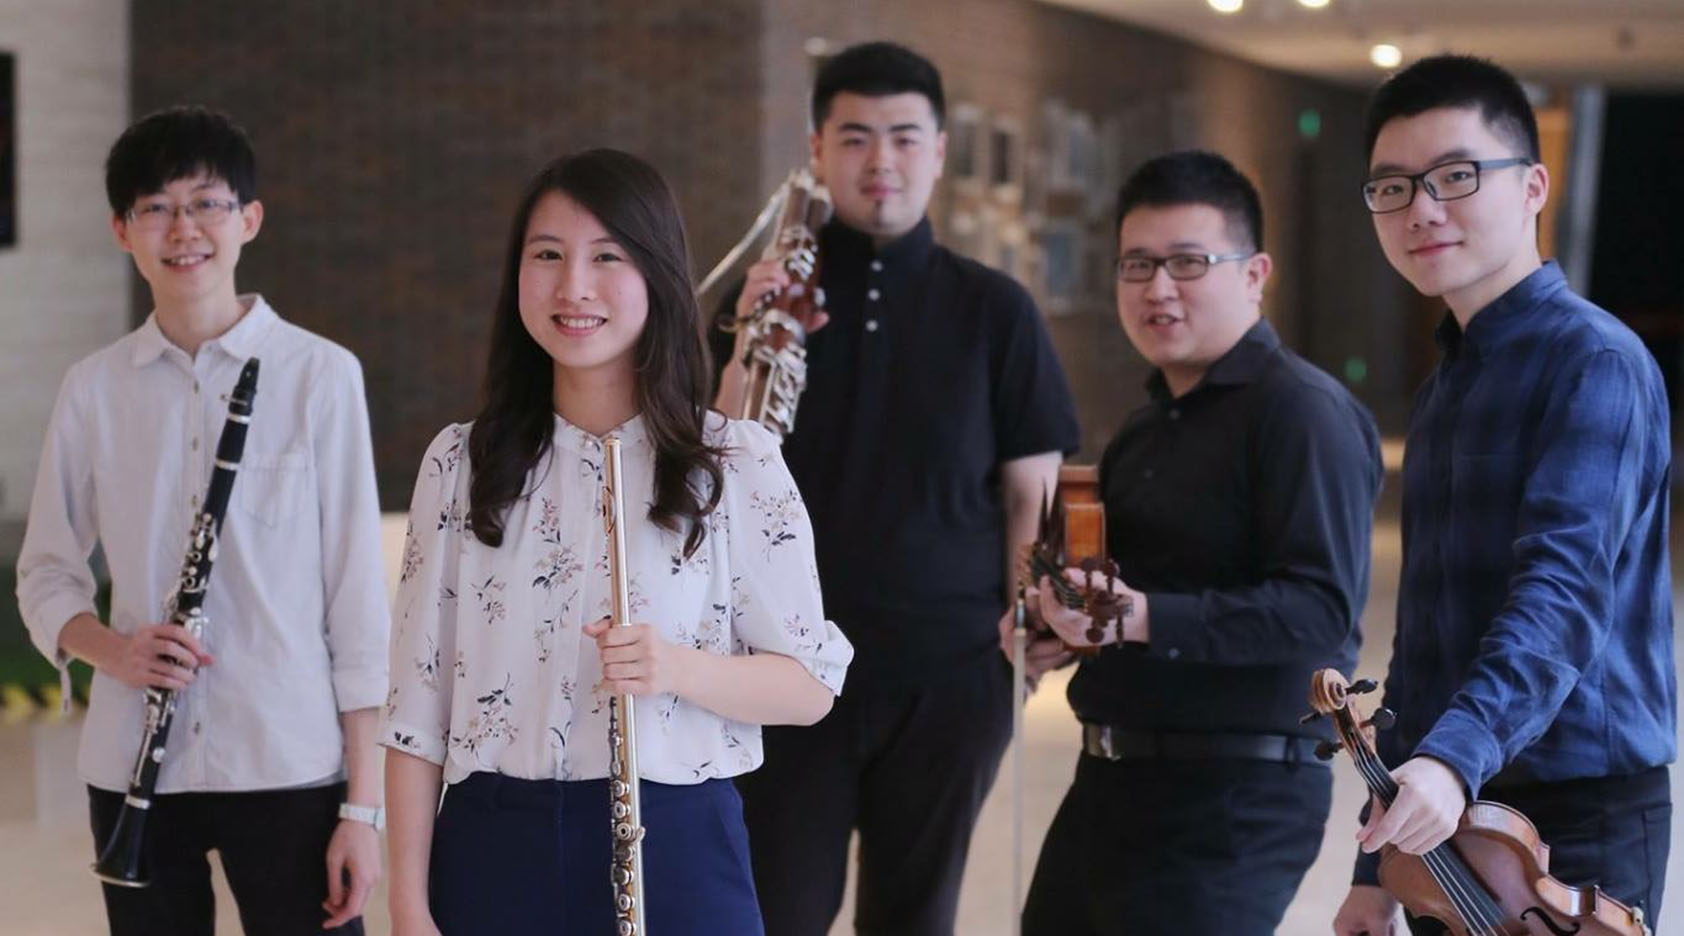 9f292f25a3dd 2018 Zarin Mehta Fellows from Shanghai Orchestra Academy Named ...